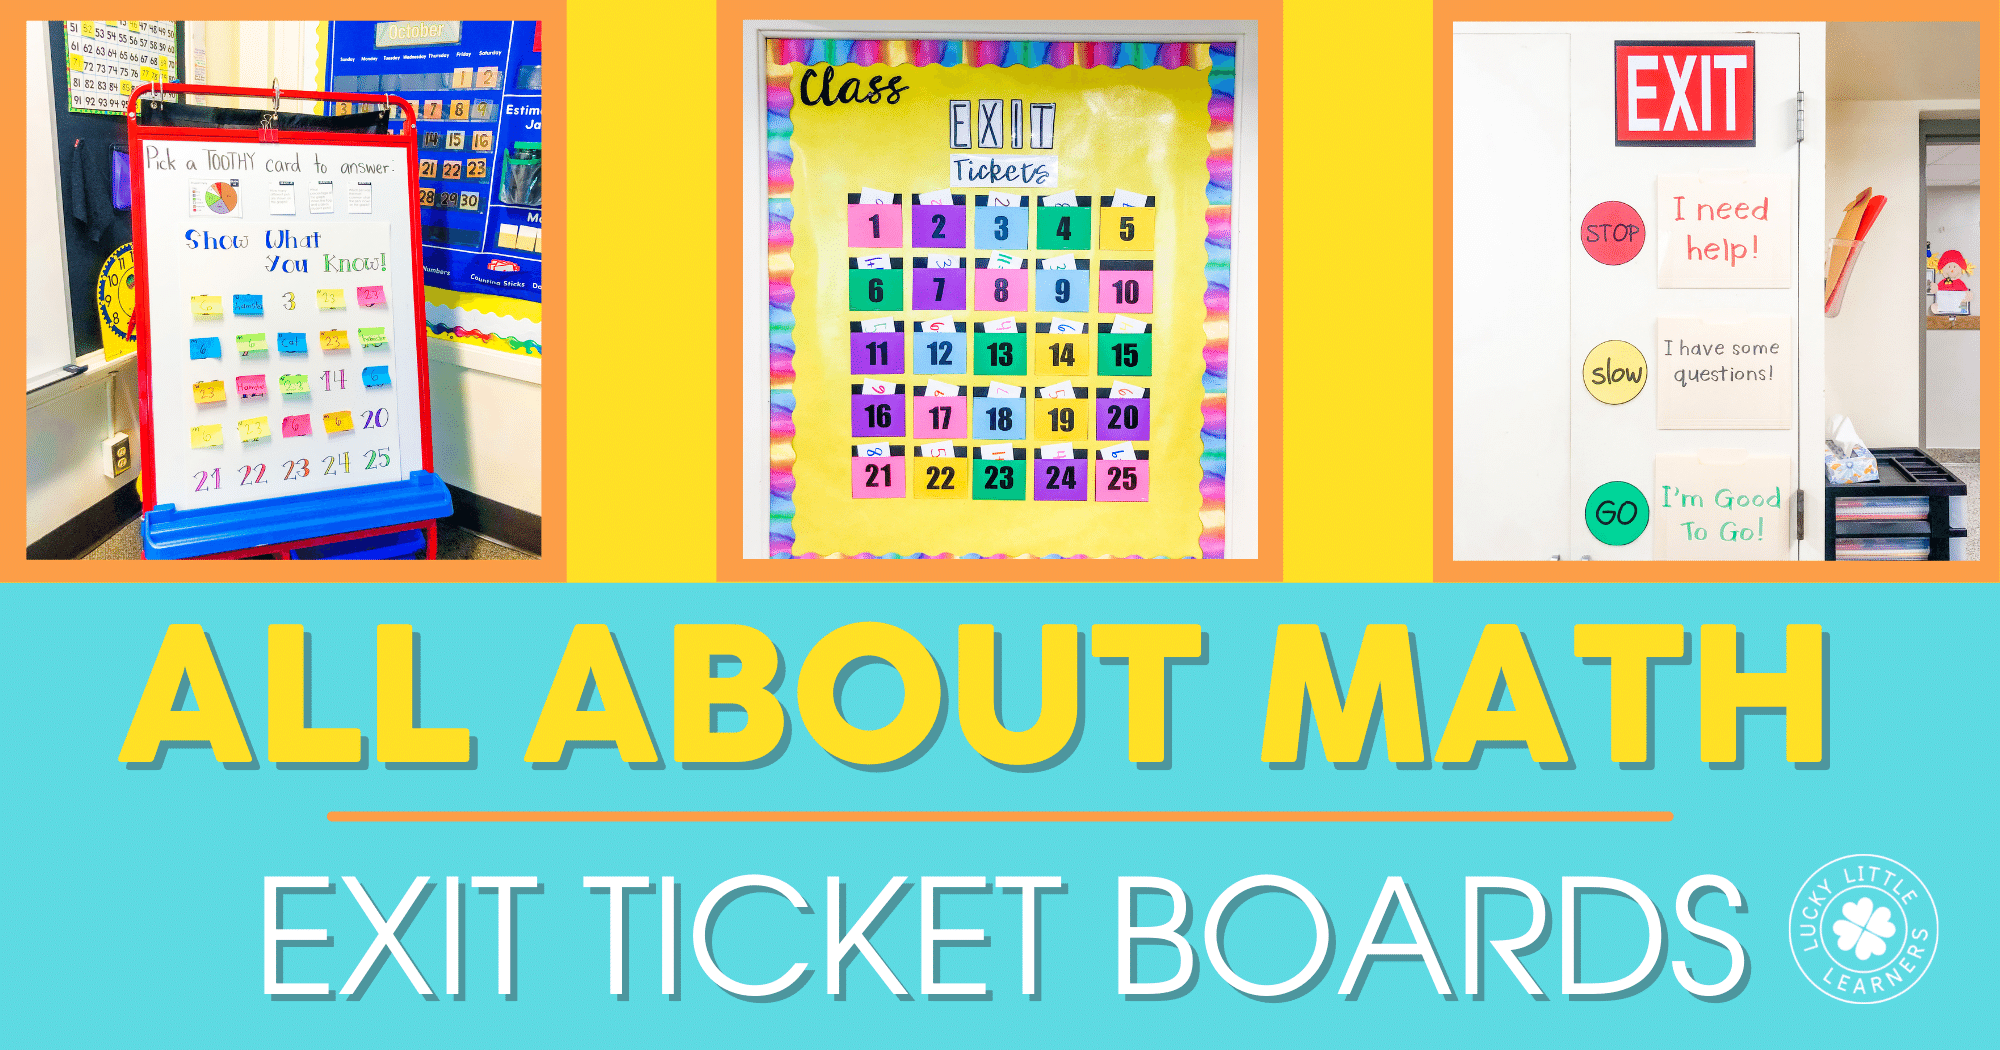 All About Math Exit Ticket Boards